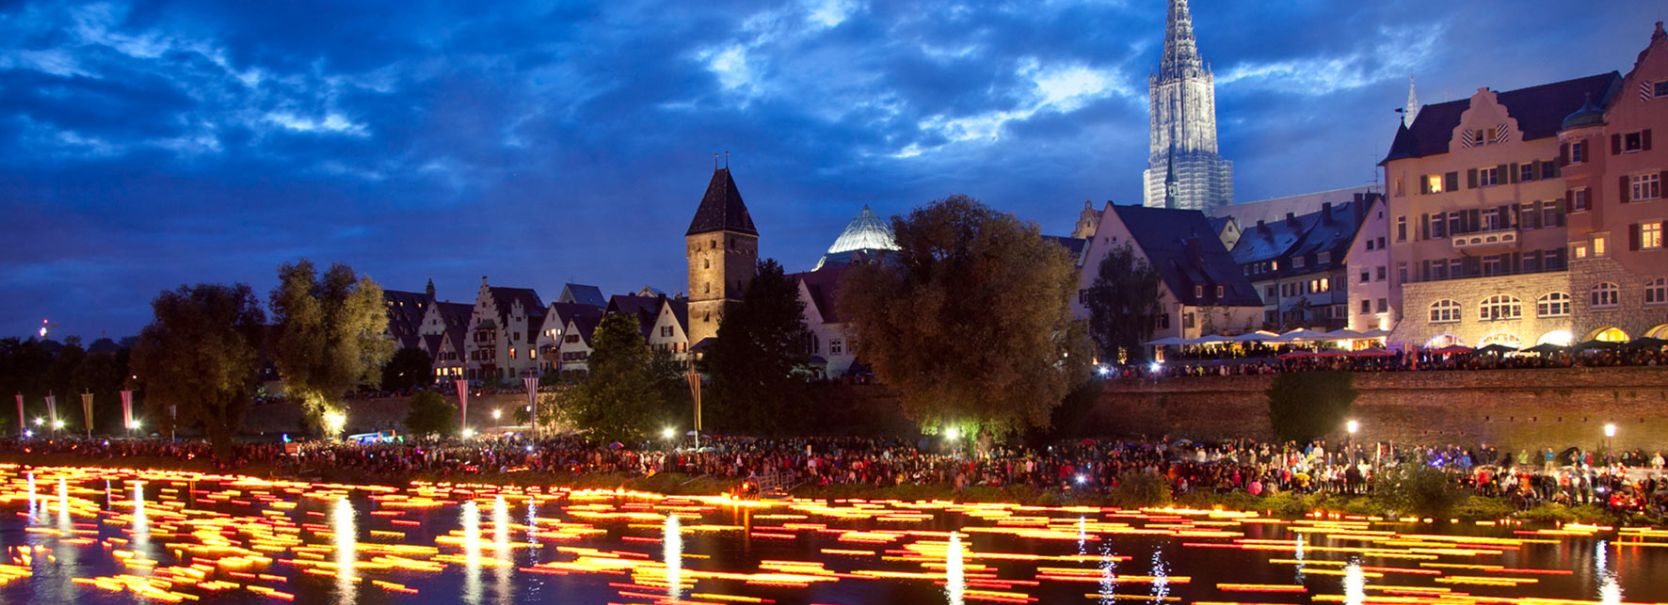 Lichterserenade in Ulm